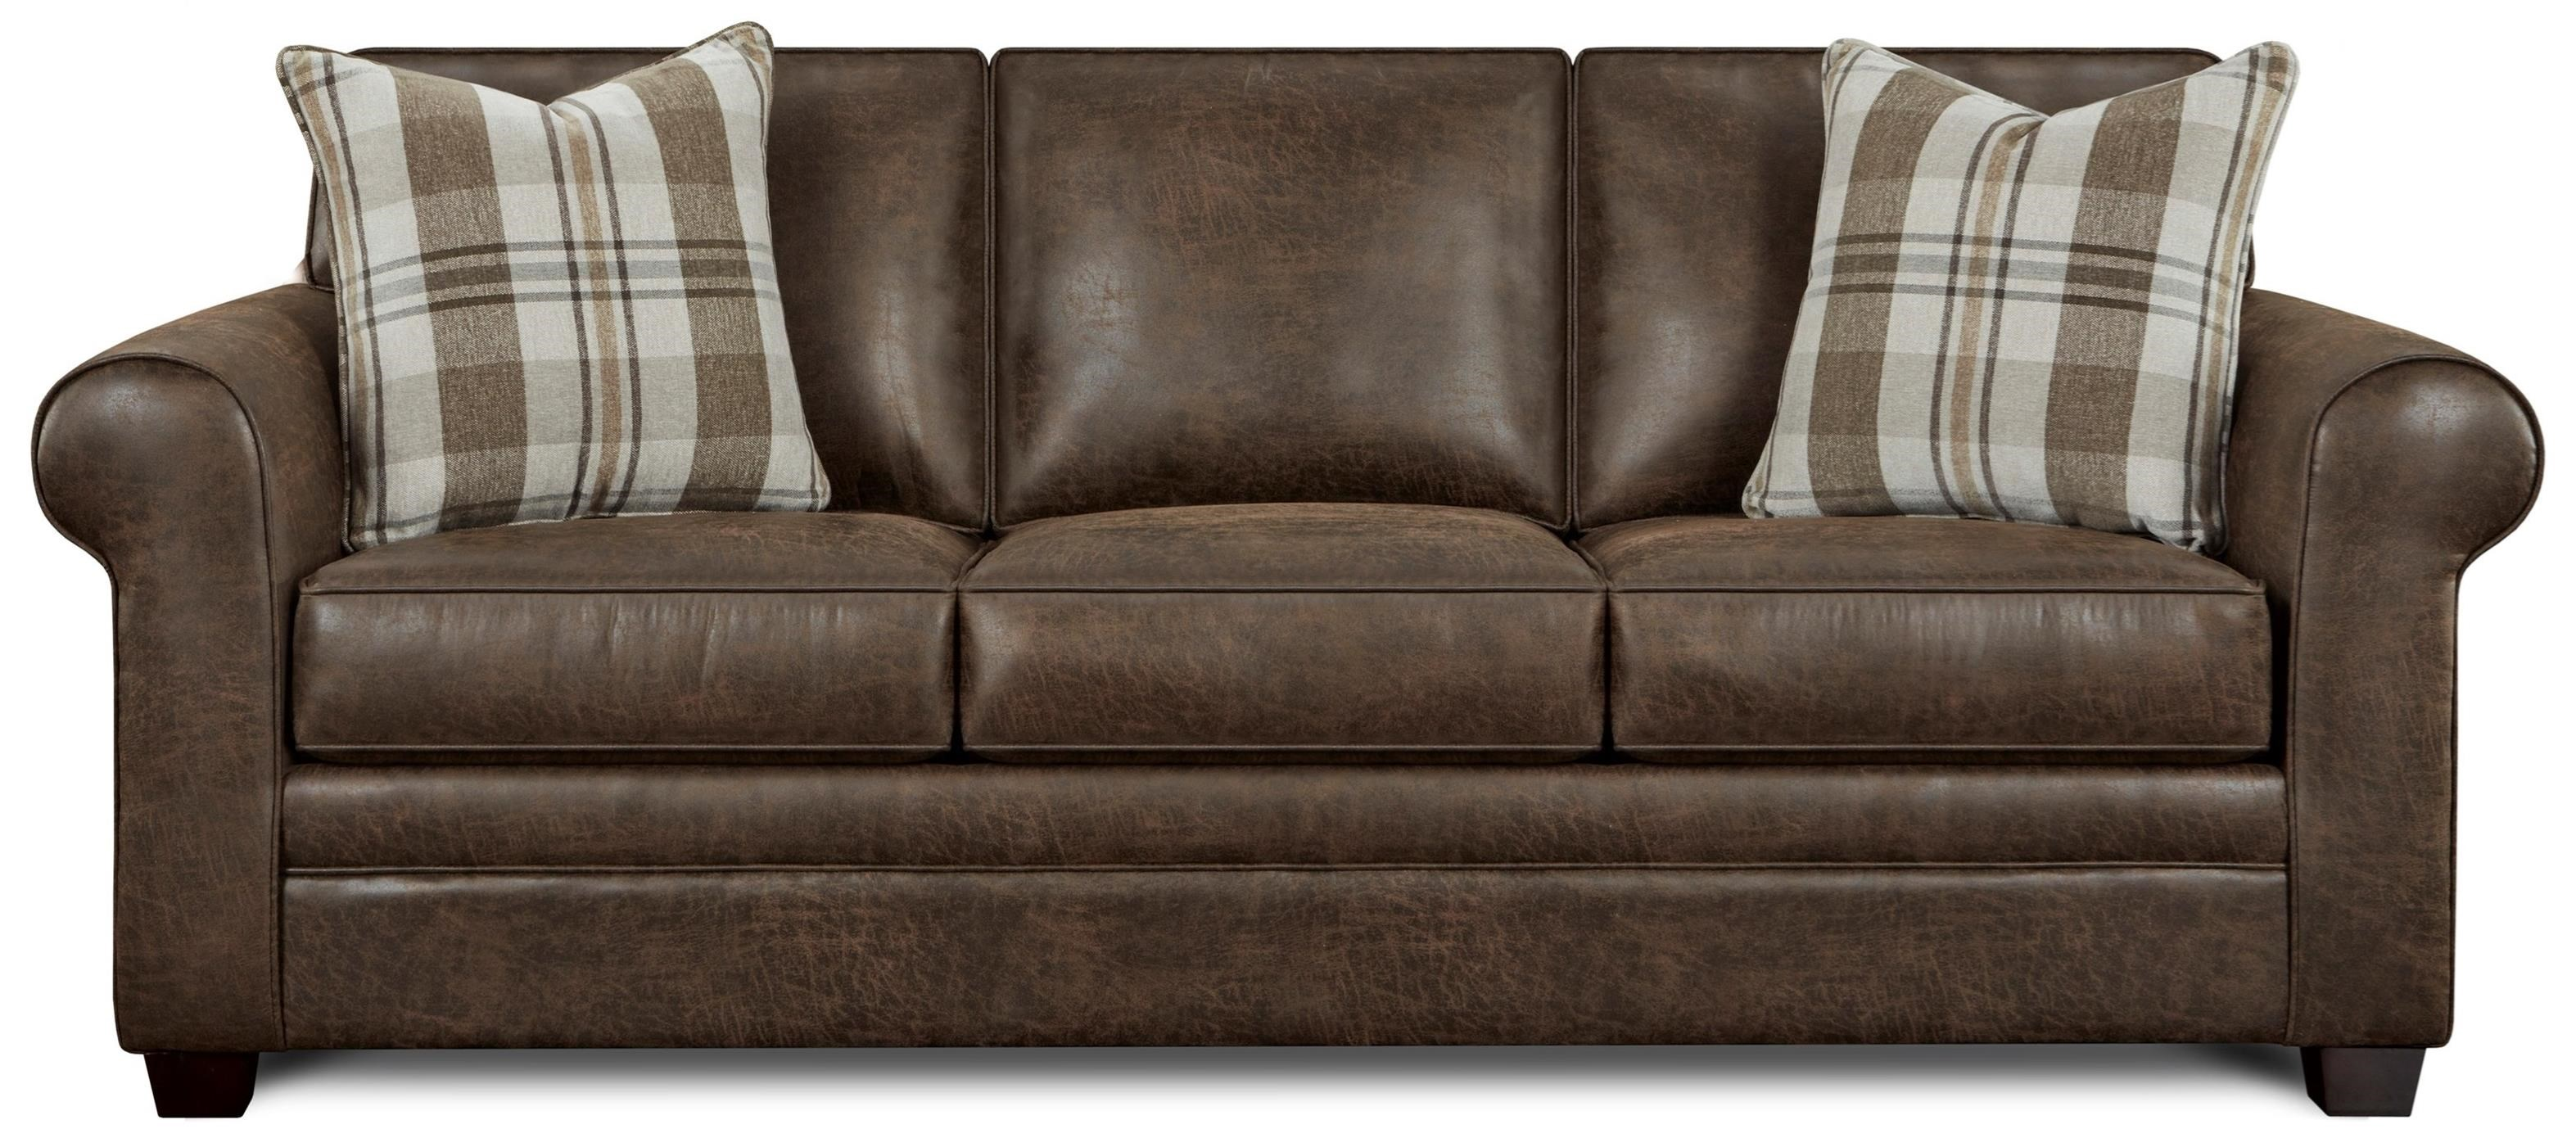 Sleeper Program Queen Sleeper by Fusion Furniture at Miller Waldrop Furniture and Decor